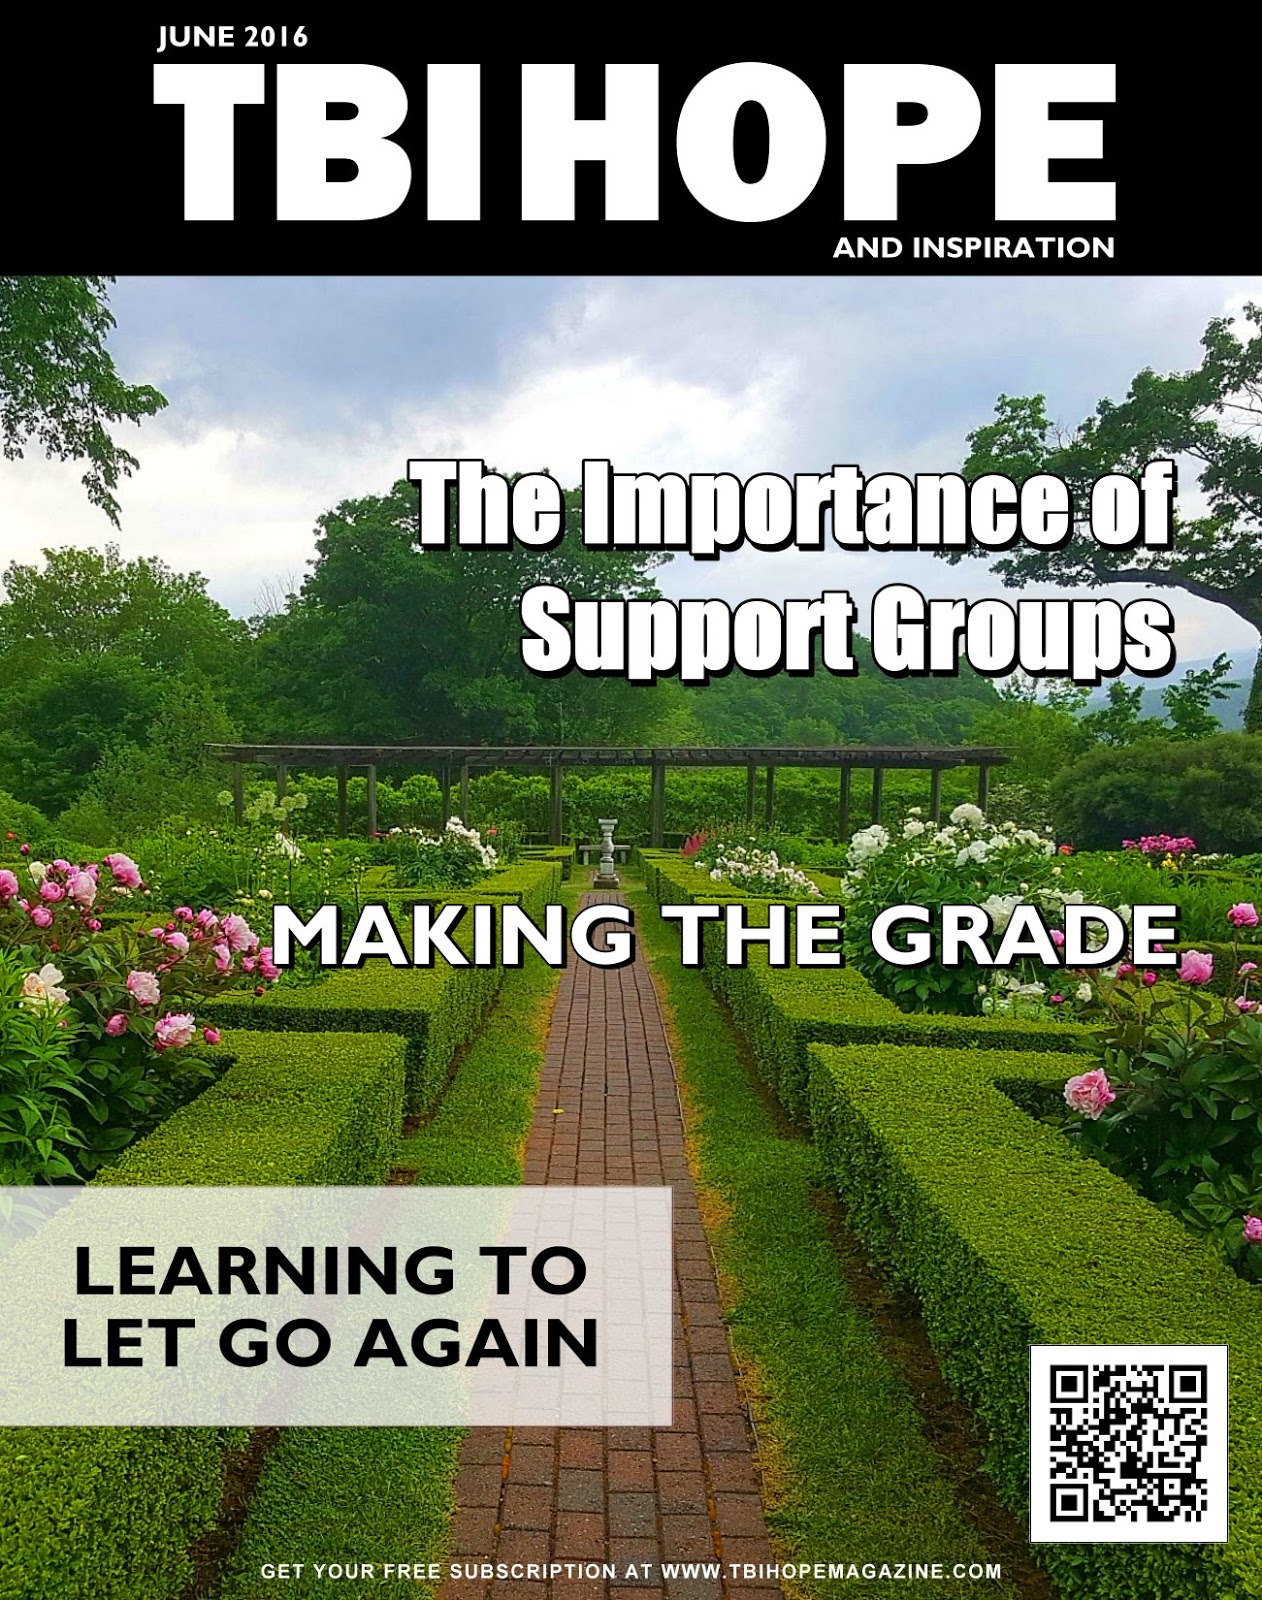 TBI HOPE Magazine June 2016 Cover Art Reveal David39s